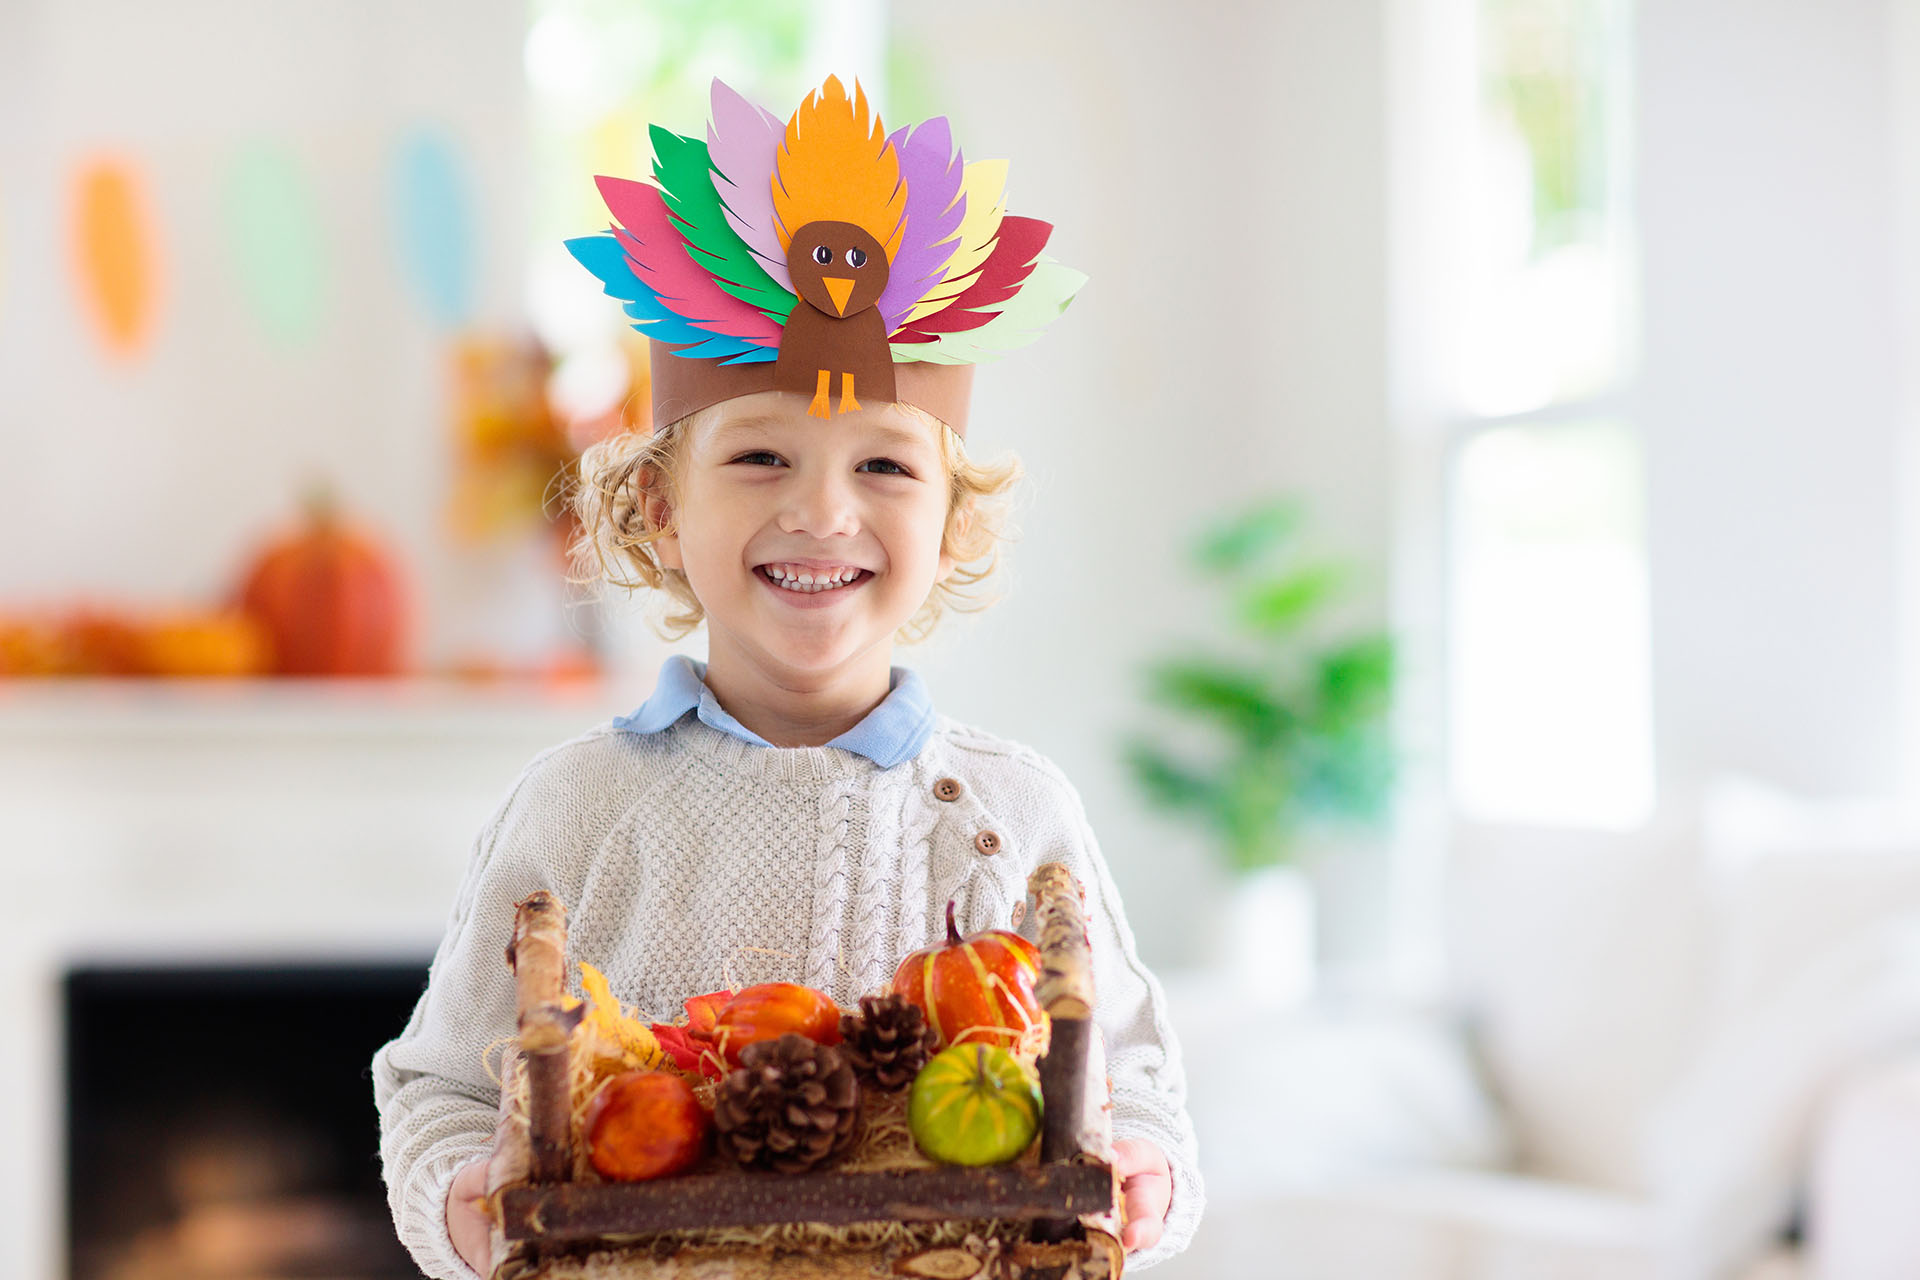 Child celebrating Thanksgiving. Kid holding pumpkin in paper turkey hat. Autumn fun crafts and art. Little blond curly boy in decorated living room. Warm knitted wear. Fall season decoration.